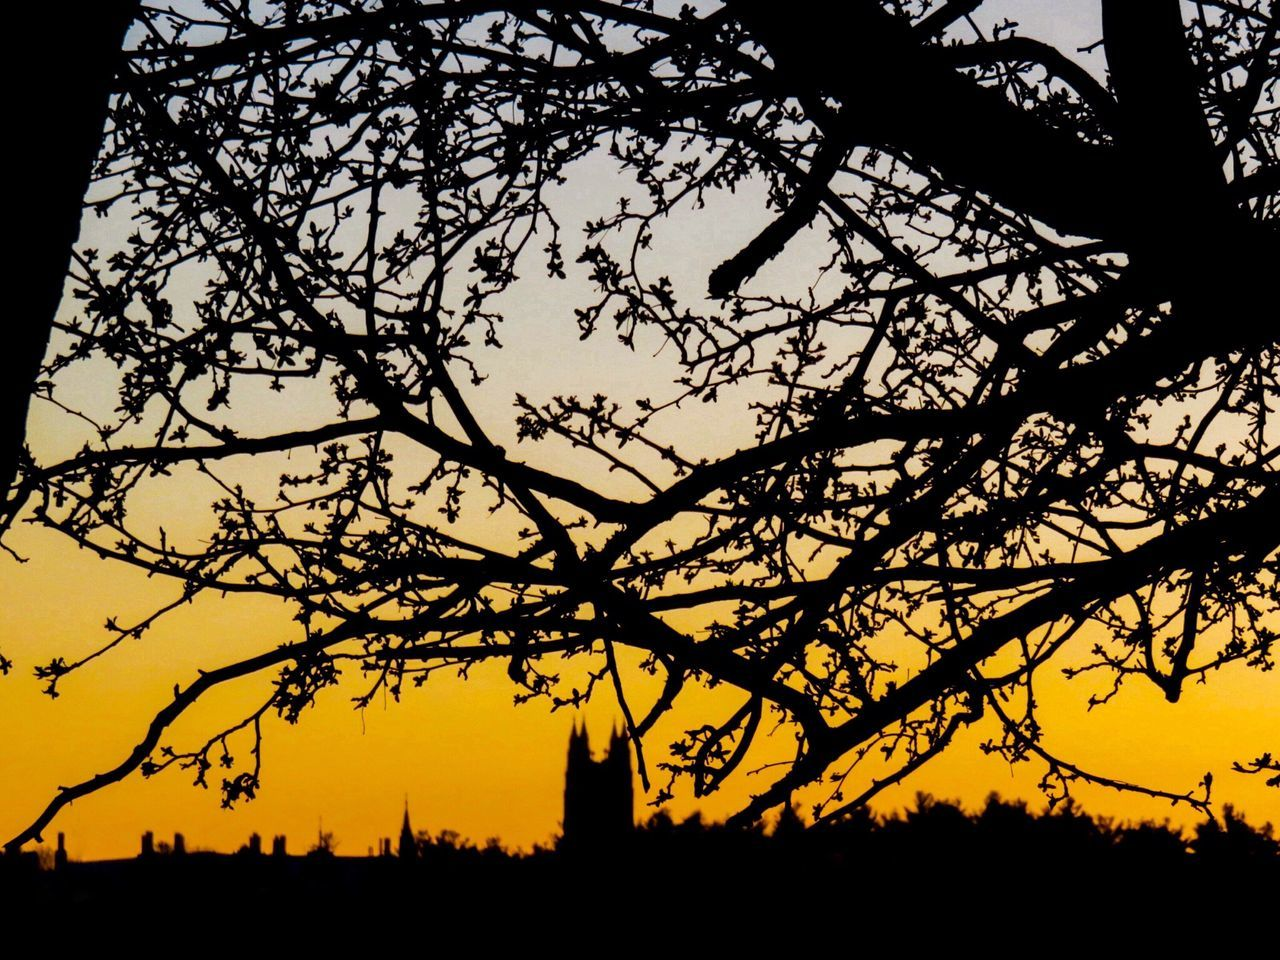 Budding trees & gothic tower silhouetted against the afterglow of a spring sunset. Fine Art Photography The Great Outdoors - 2016 EyeEm Awards Sunset Sunset Silhouettes Sunset_collection Silhouette_collection Silhouette Tree Silhouette Branches And Sky Gothic Architecture Nature Photography Beauty In Nature EyeEm Best Shots - Landscape EyeEm Best Shots - Sunsets + Sunrise Landscape Budding Tree Orange Sky Yellow Sky Serenity Chestnut Hill Reservoir Boston 43 Golden Moments Evening Sky Spring Buds On Branches